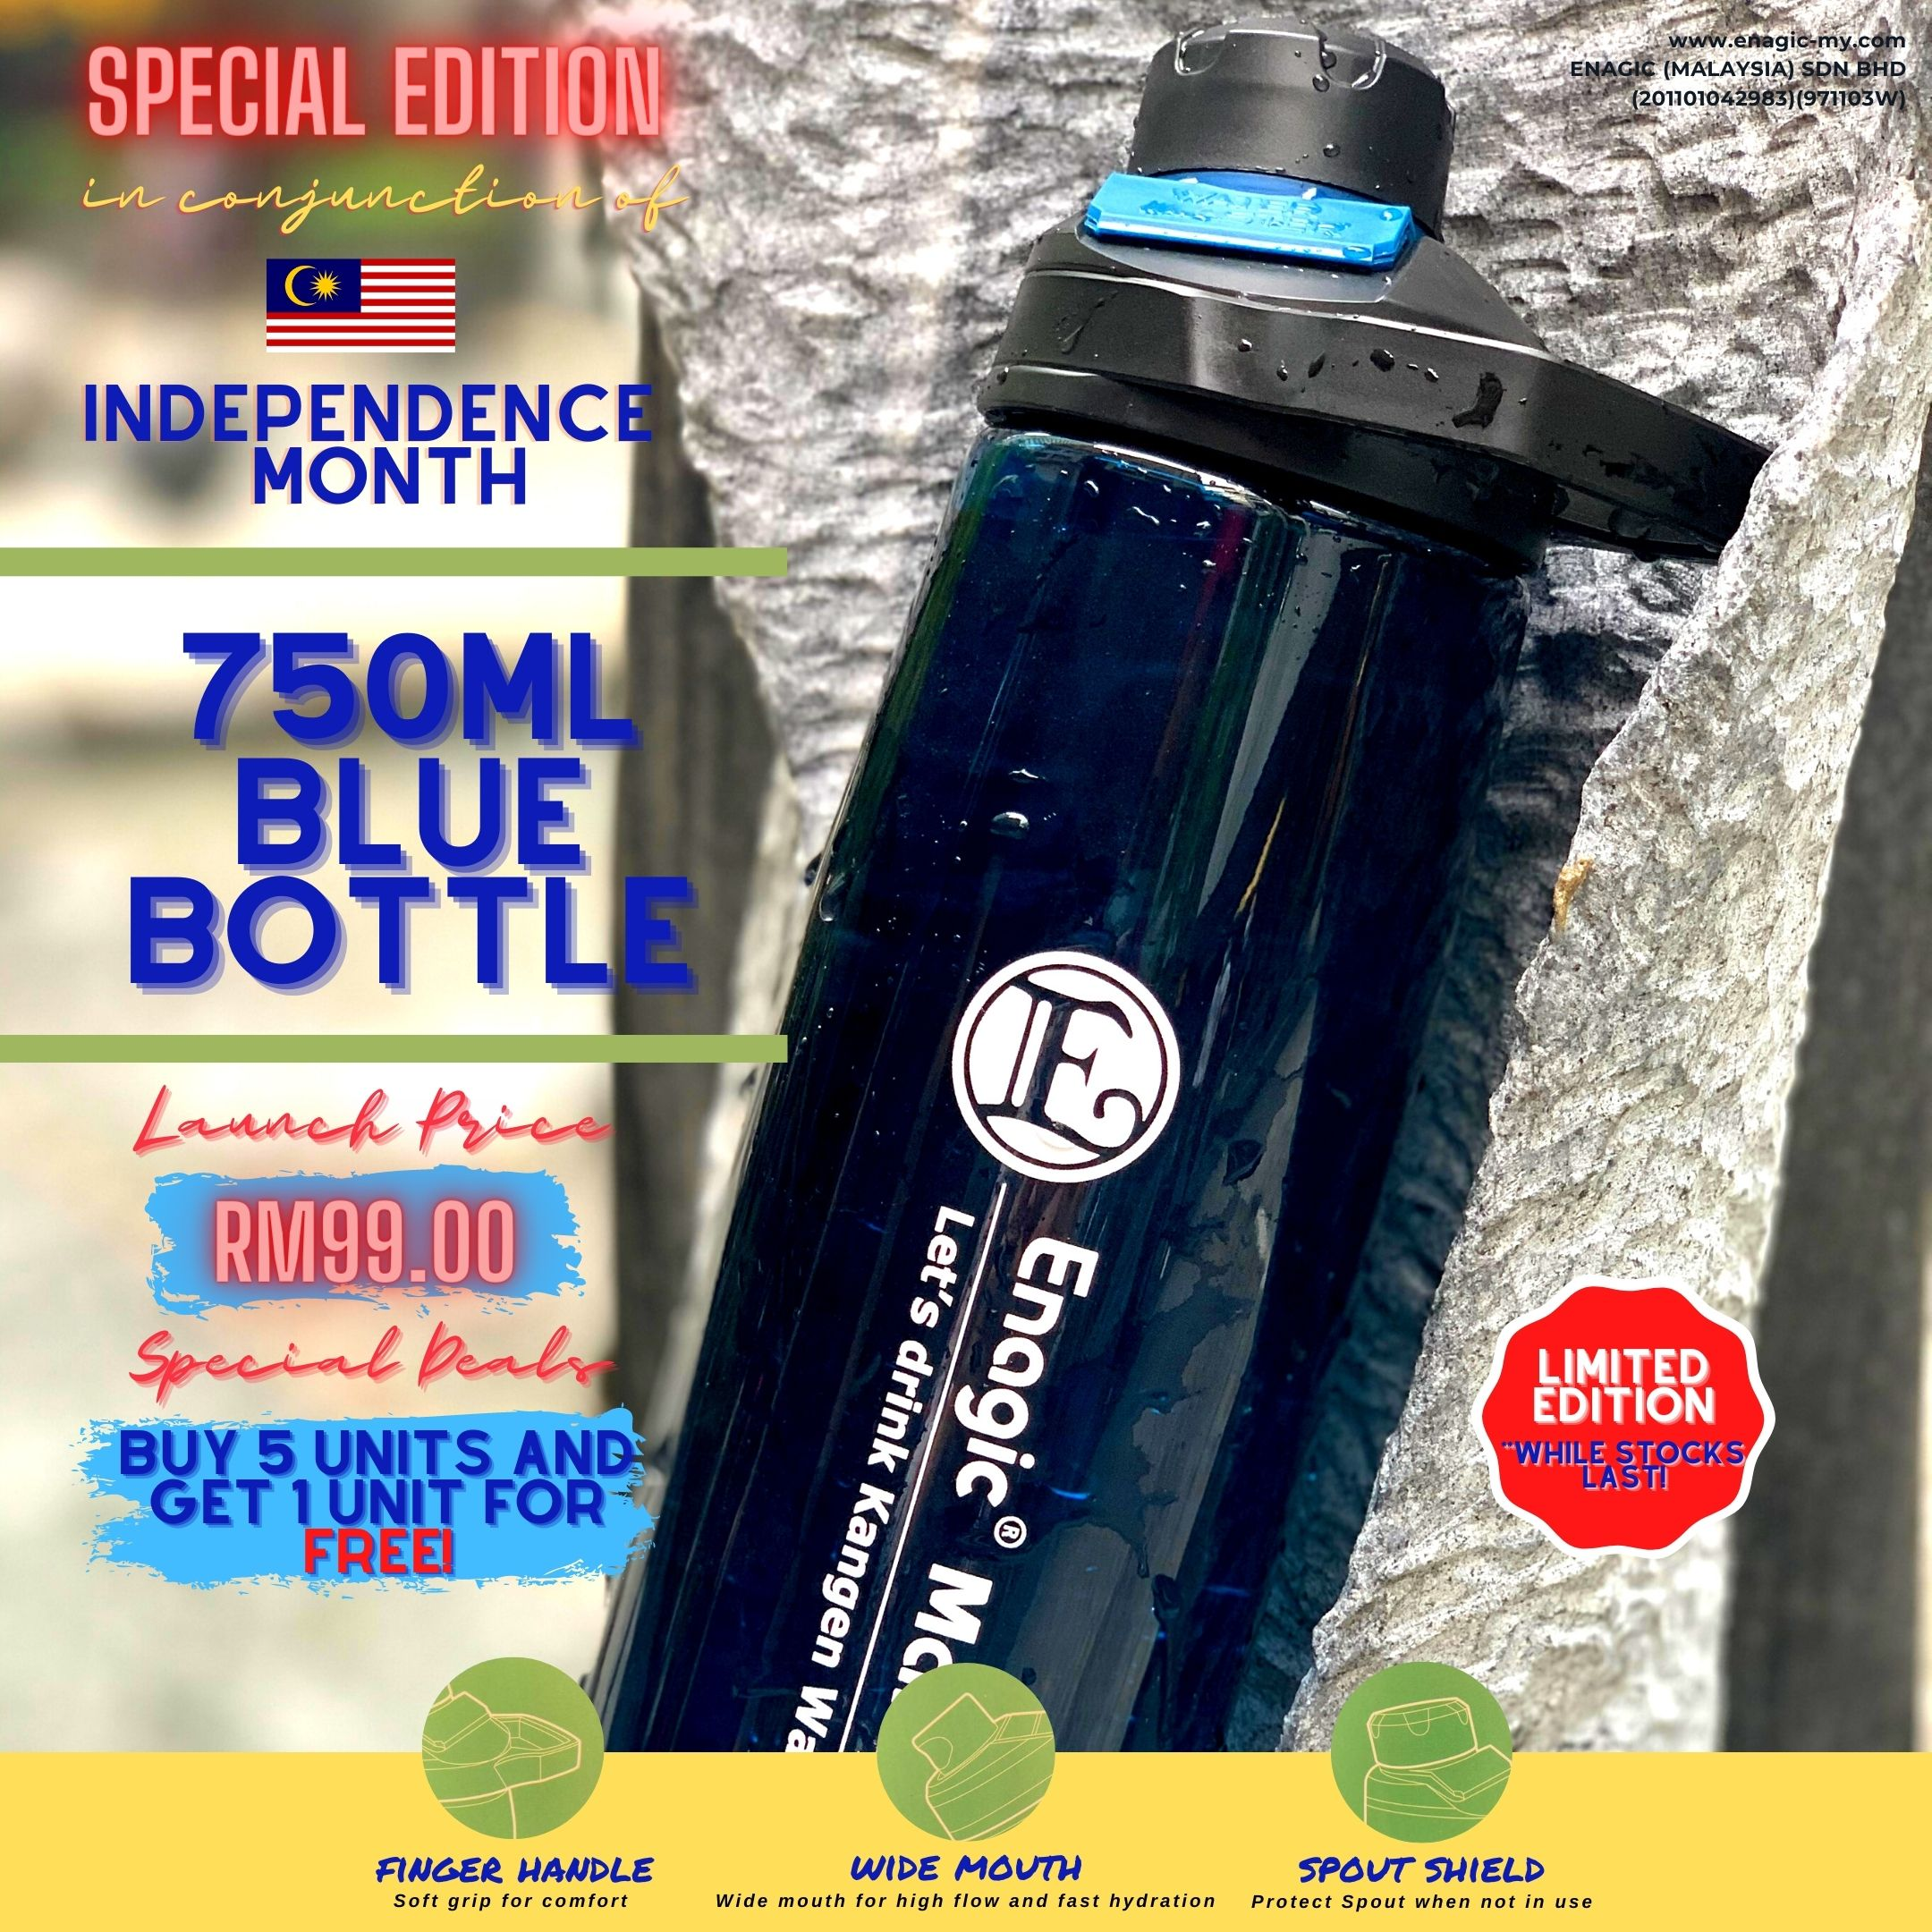 Latest Edition – Drinking Bottle (750ml Blue Bottle)